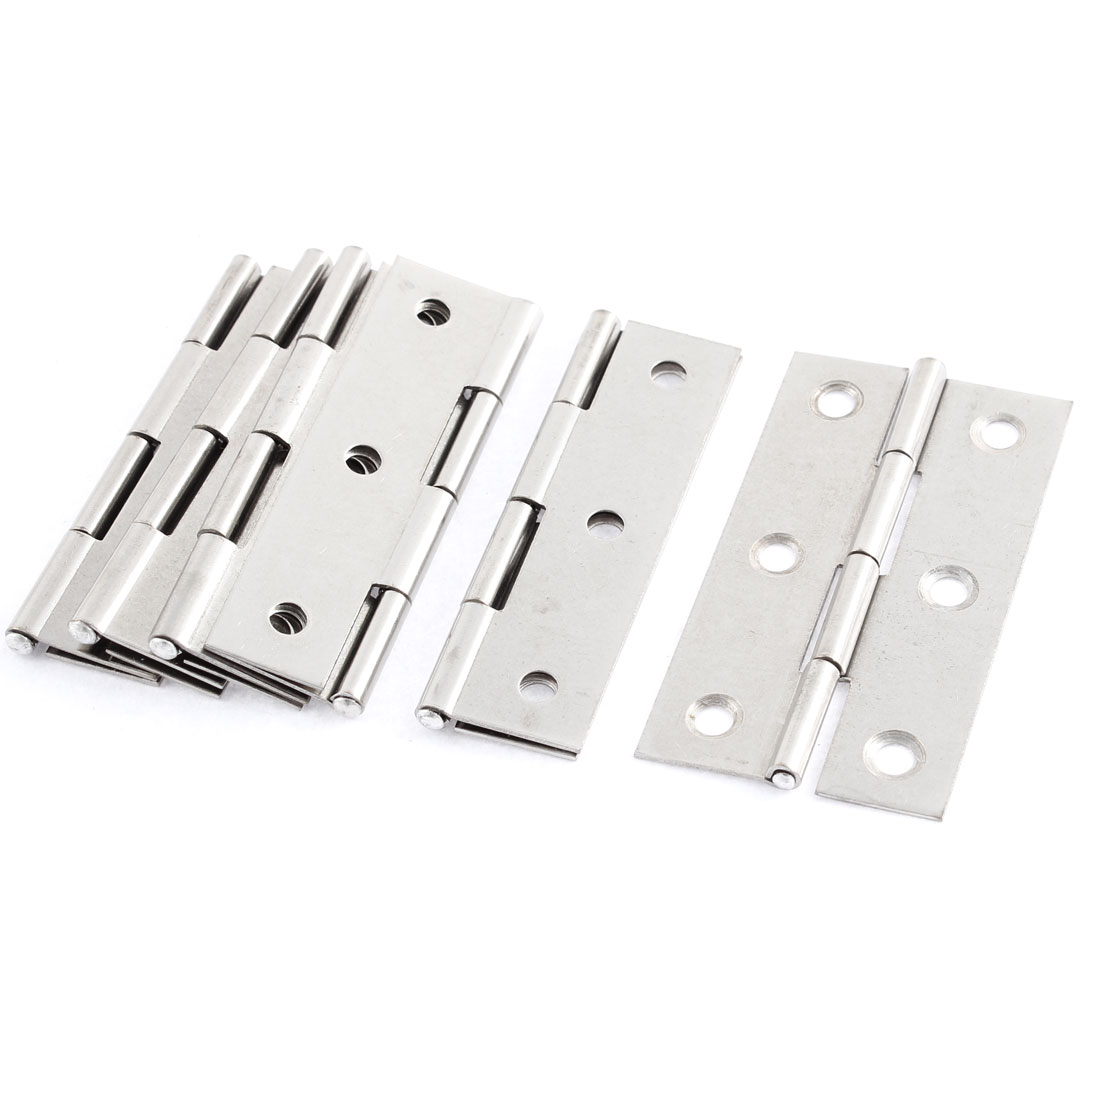 Rectangle Stainless Steel Window Cabinet Furniture Closet Door Hinge Silver Tone 6 Pcs